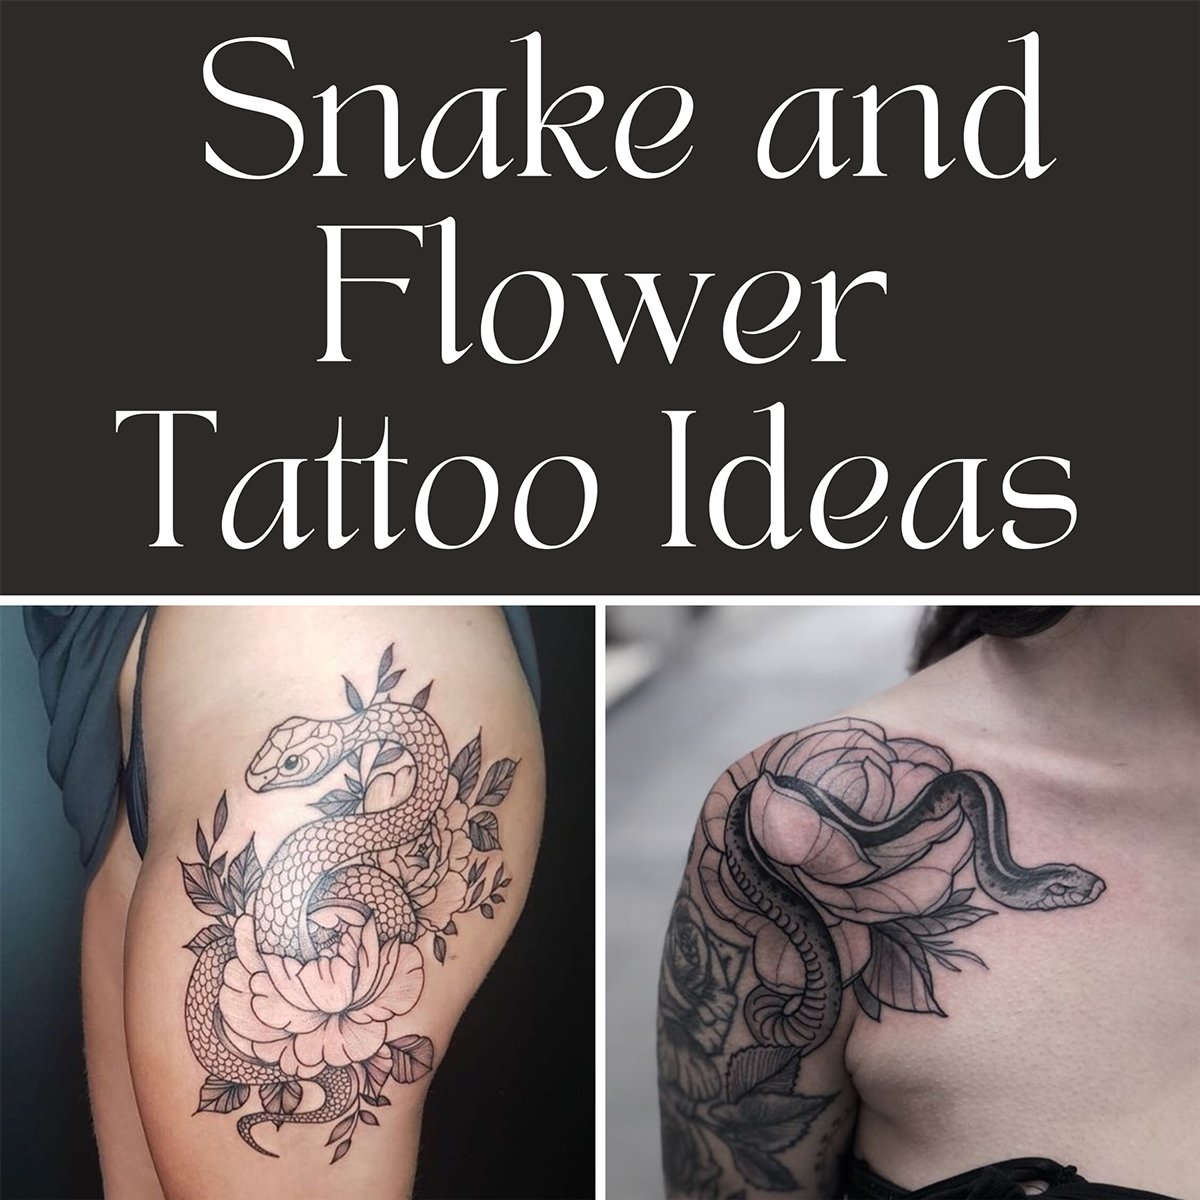 Snake and Flower Tattoo